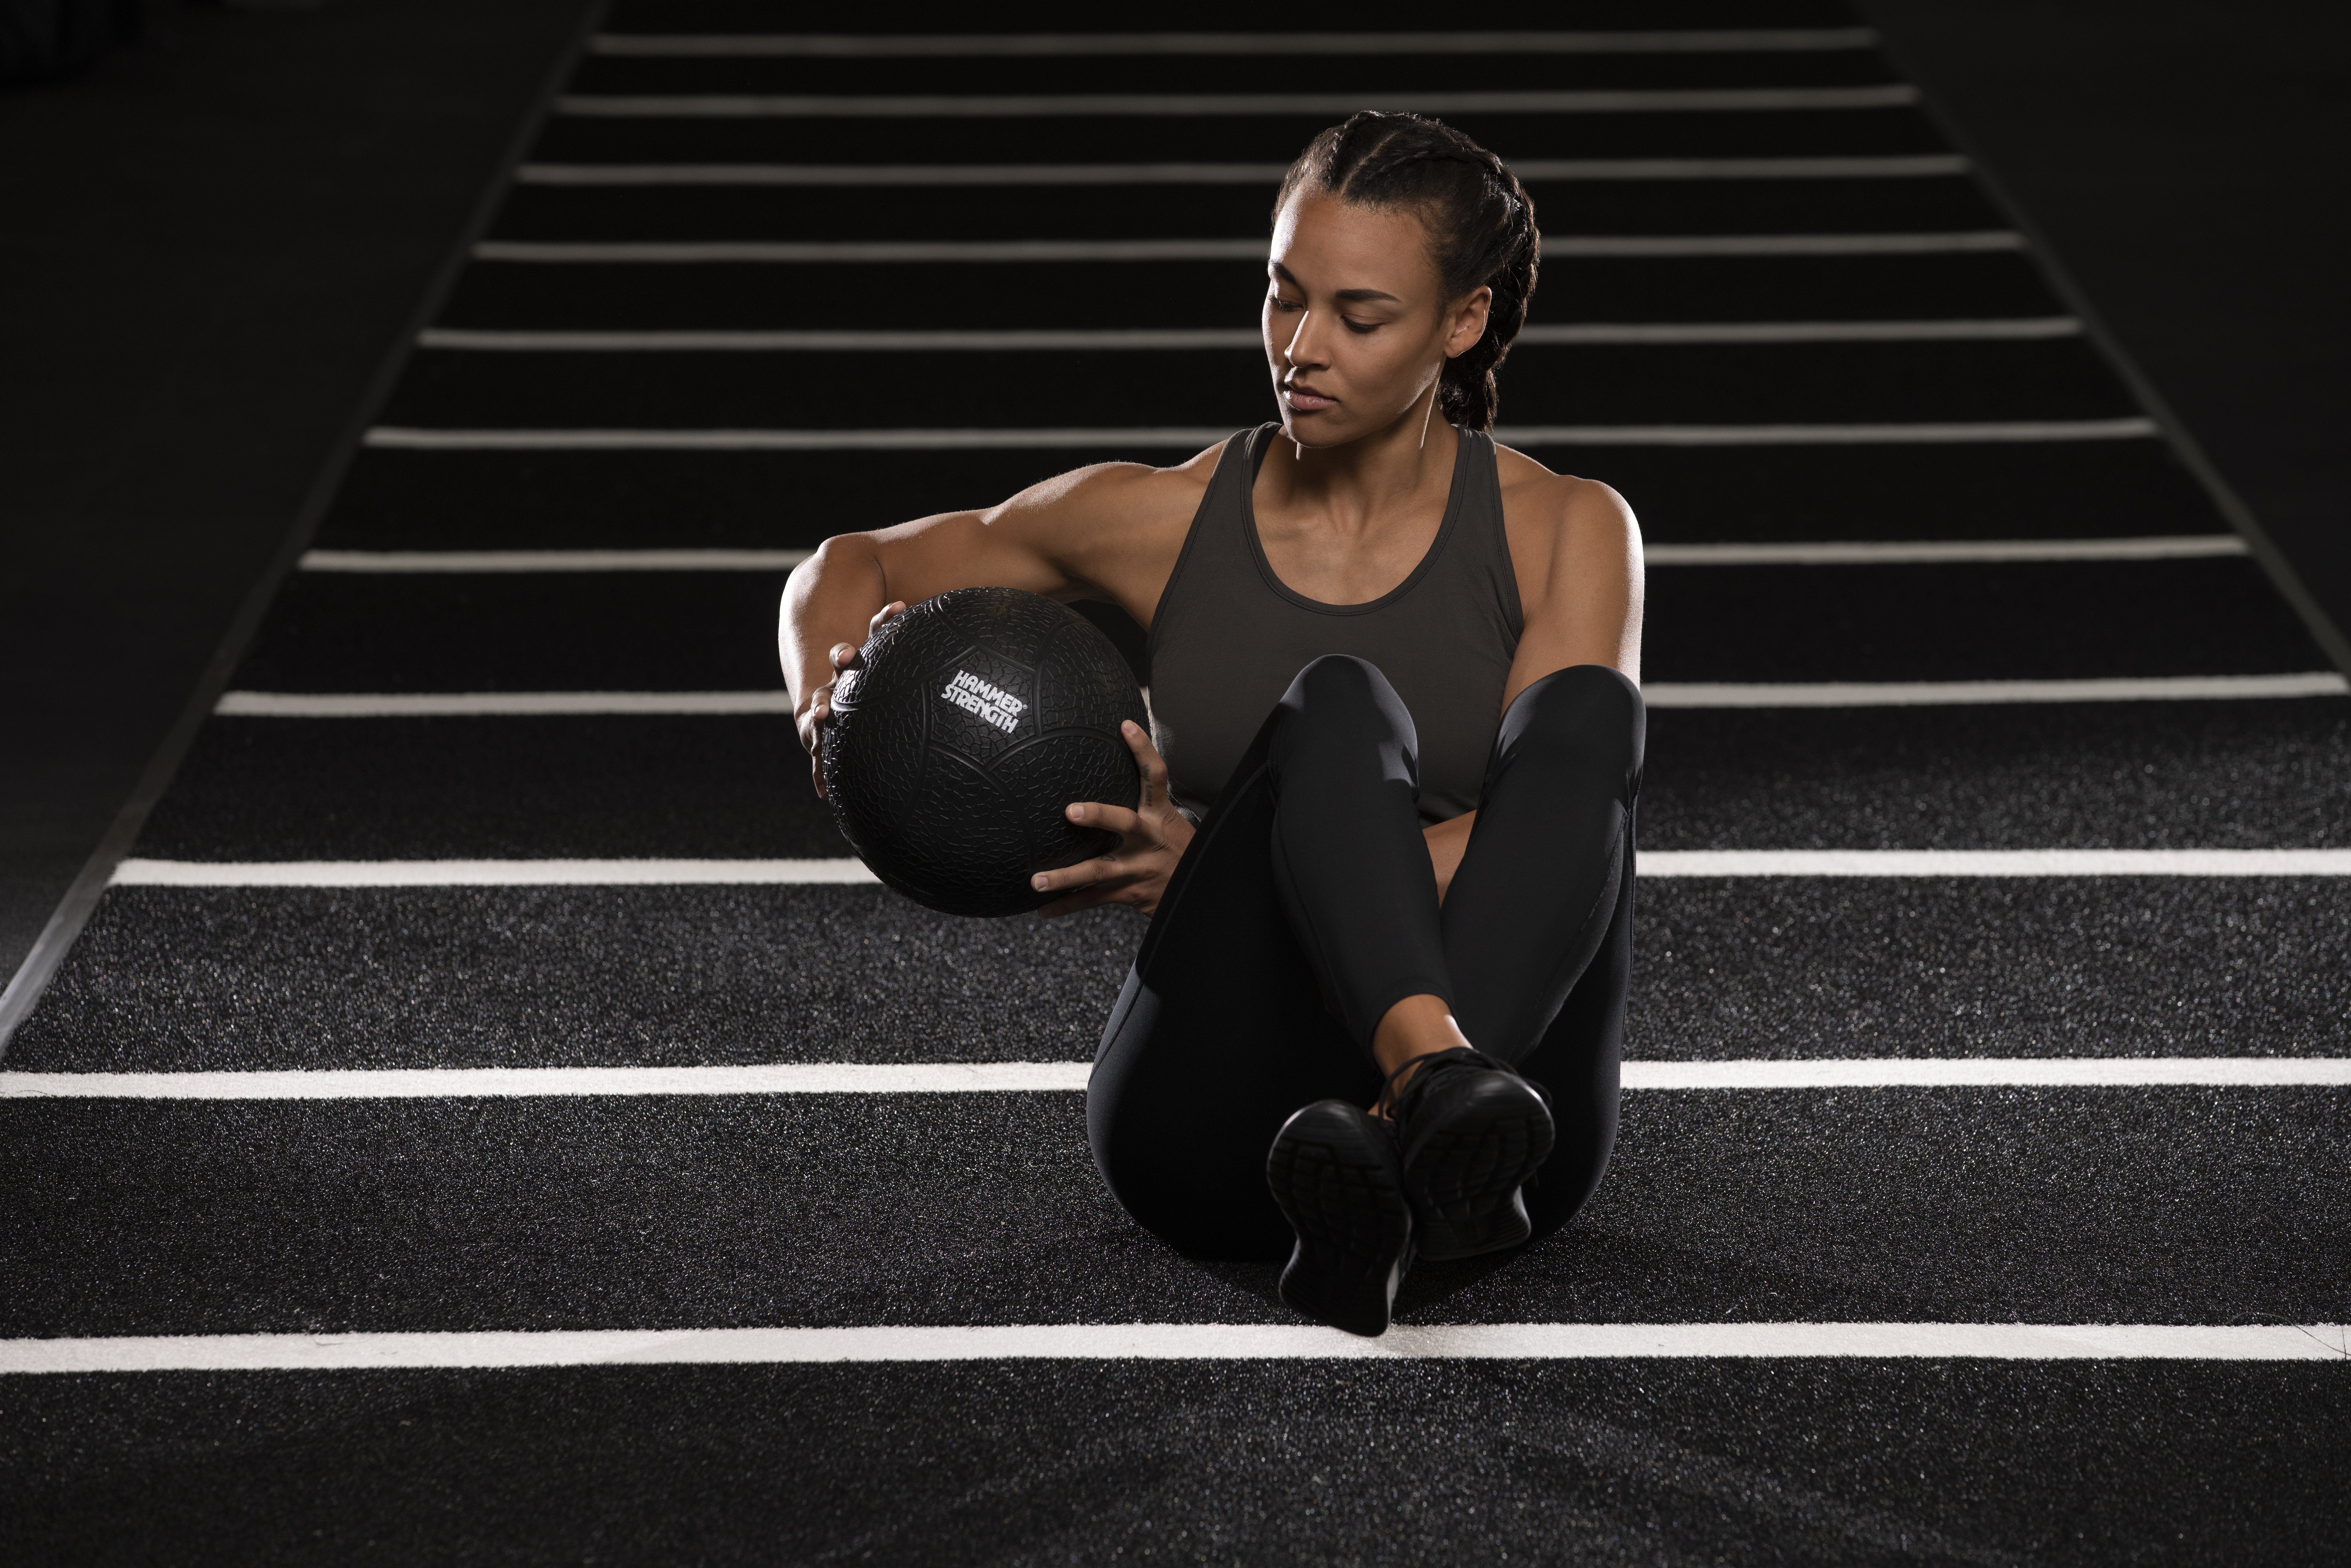 Woman_with_Medicine_Ball_on_Track